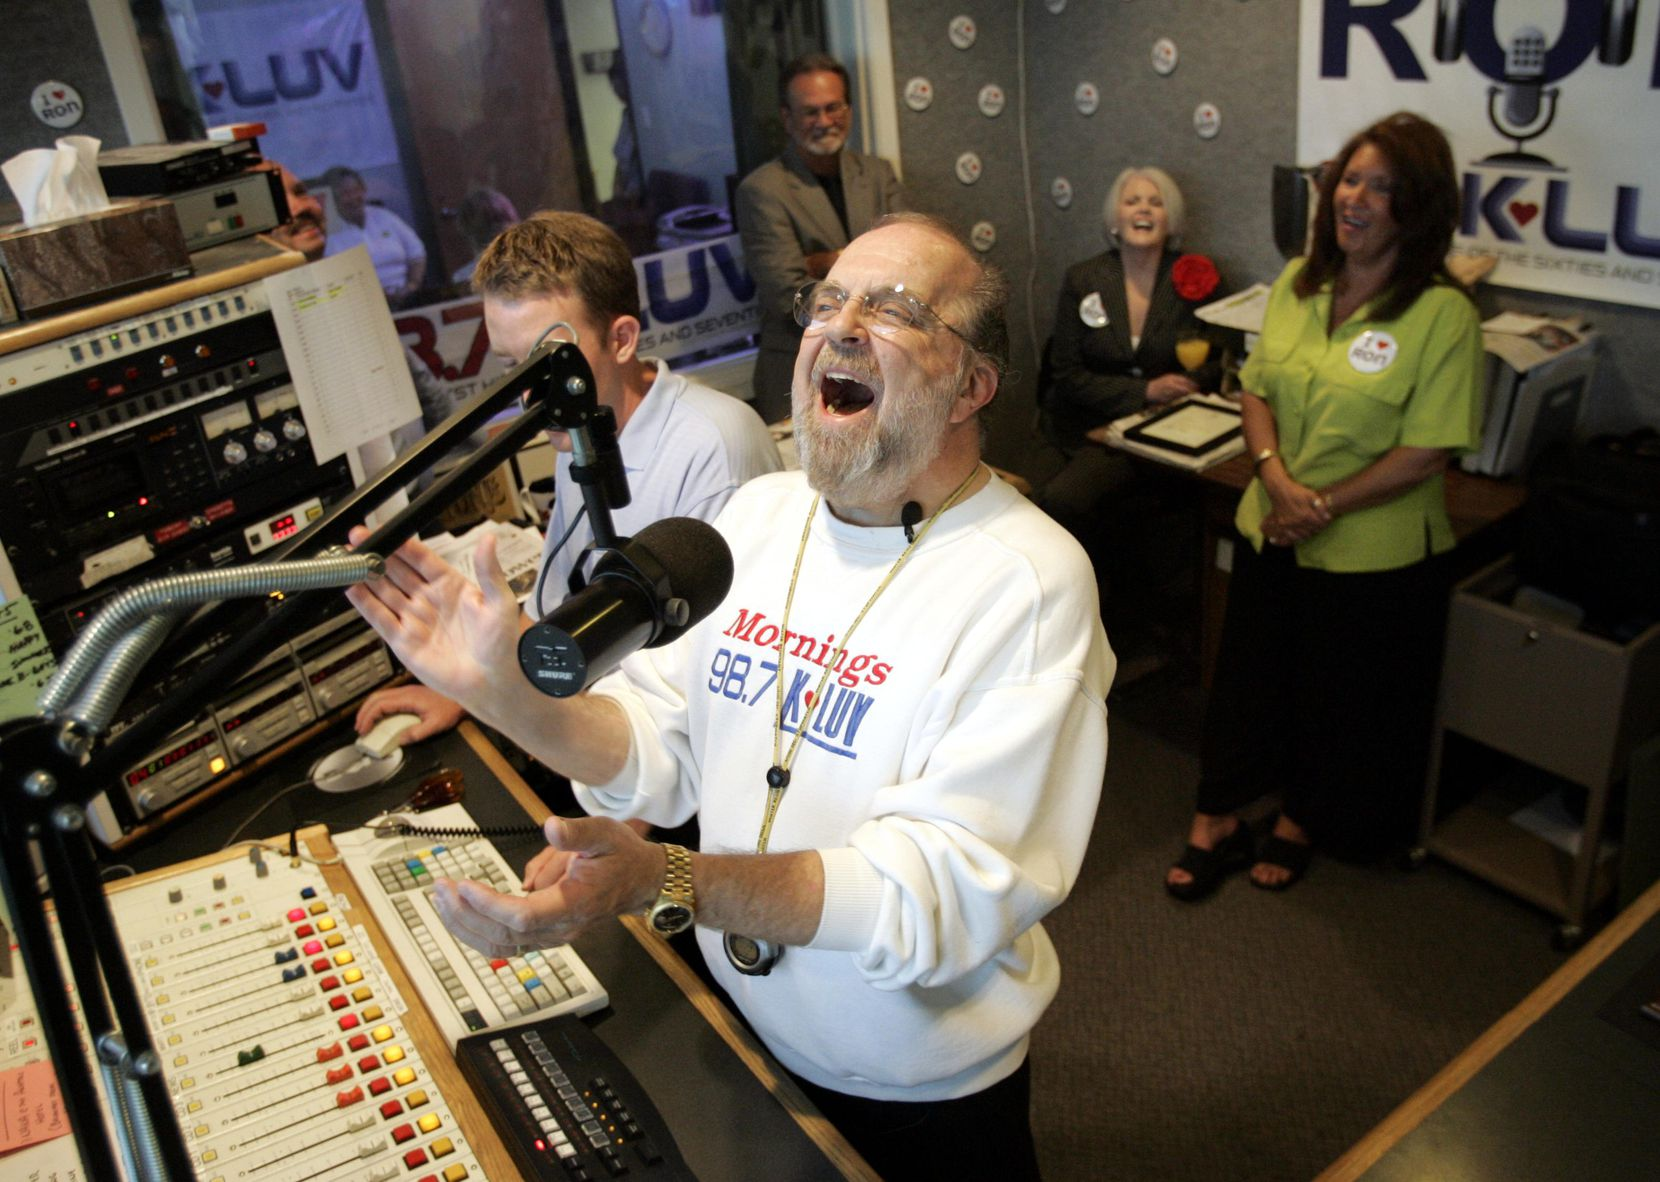 Radio personality Ron Chapman laughs at a comment made by a caller, as he hosts his final show for KLUV on Friday, June 24, 2005.